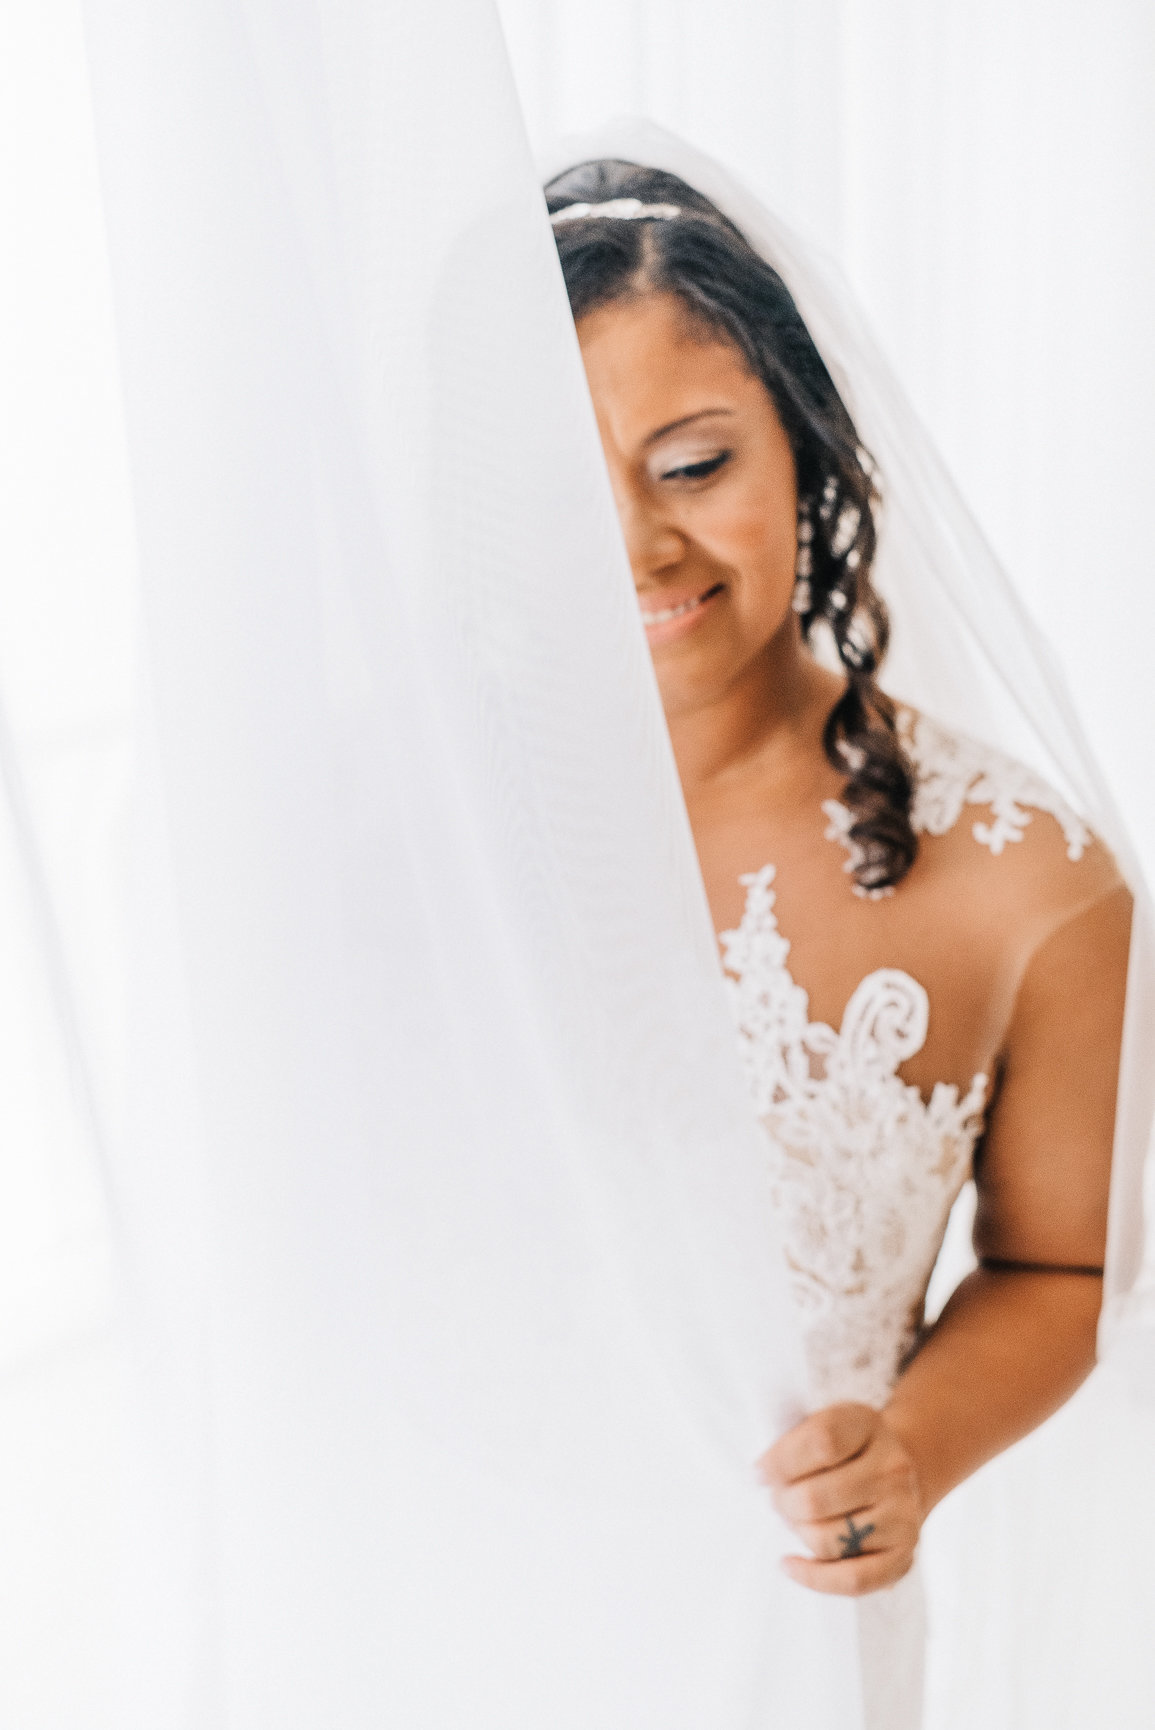 WEDDINGPHOTOGRAPHERMIAMI-47